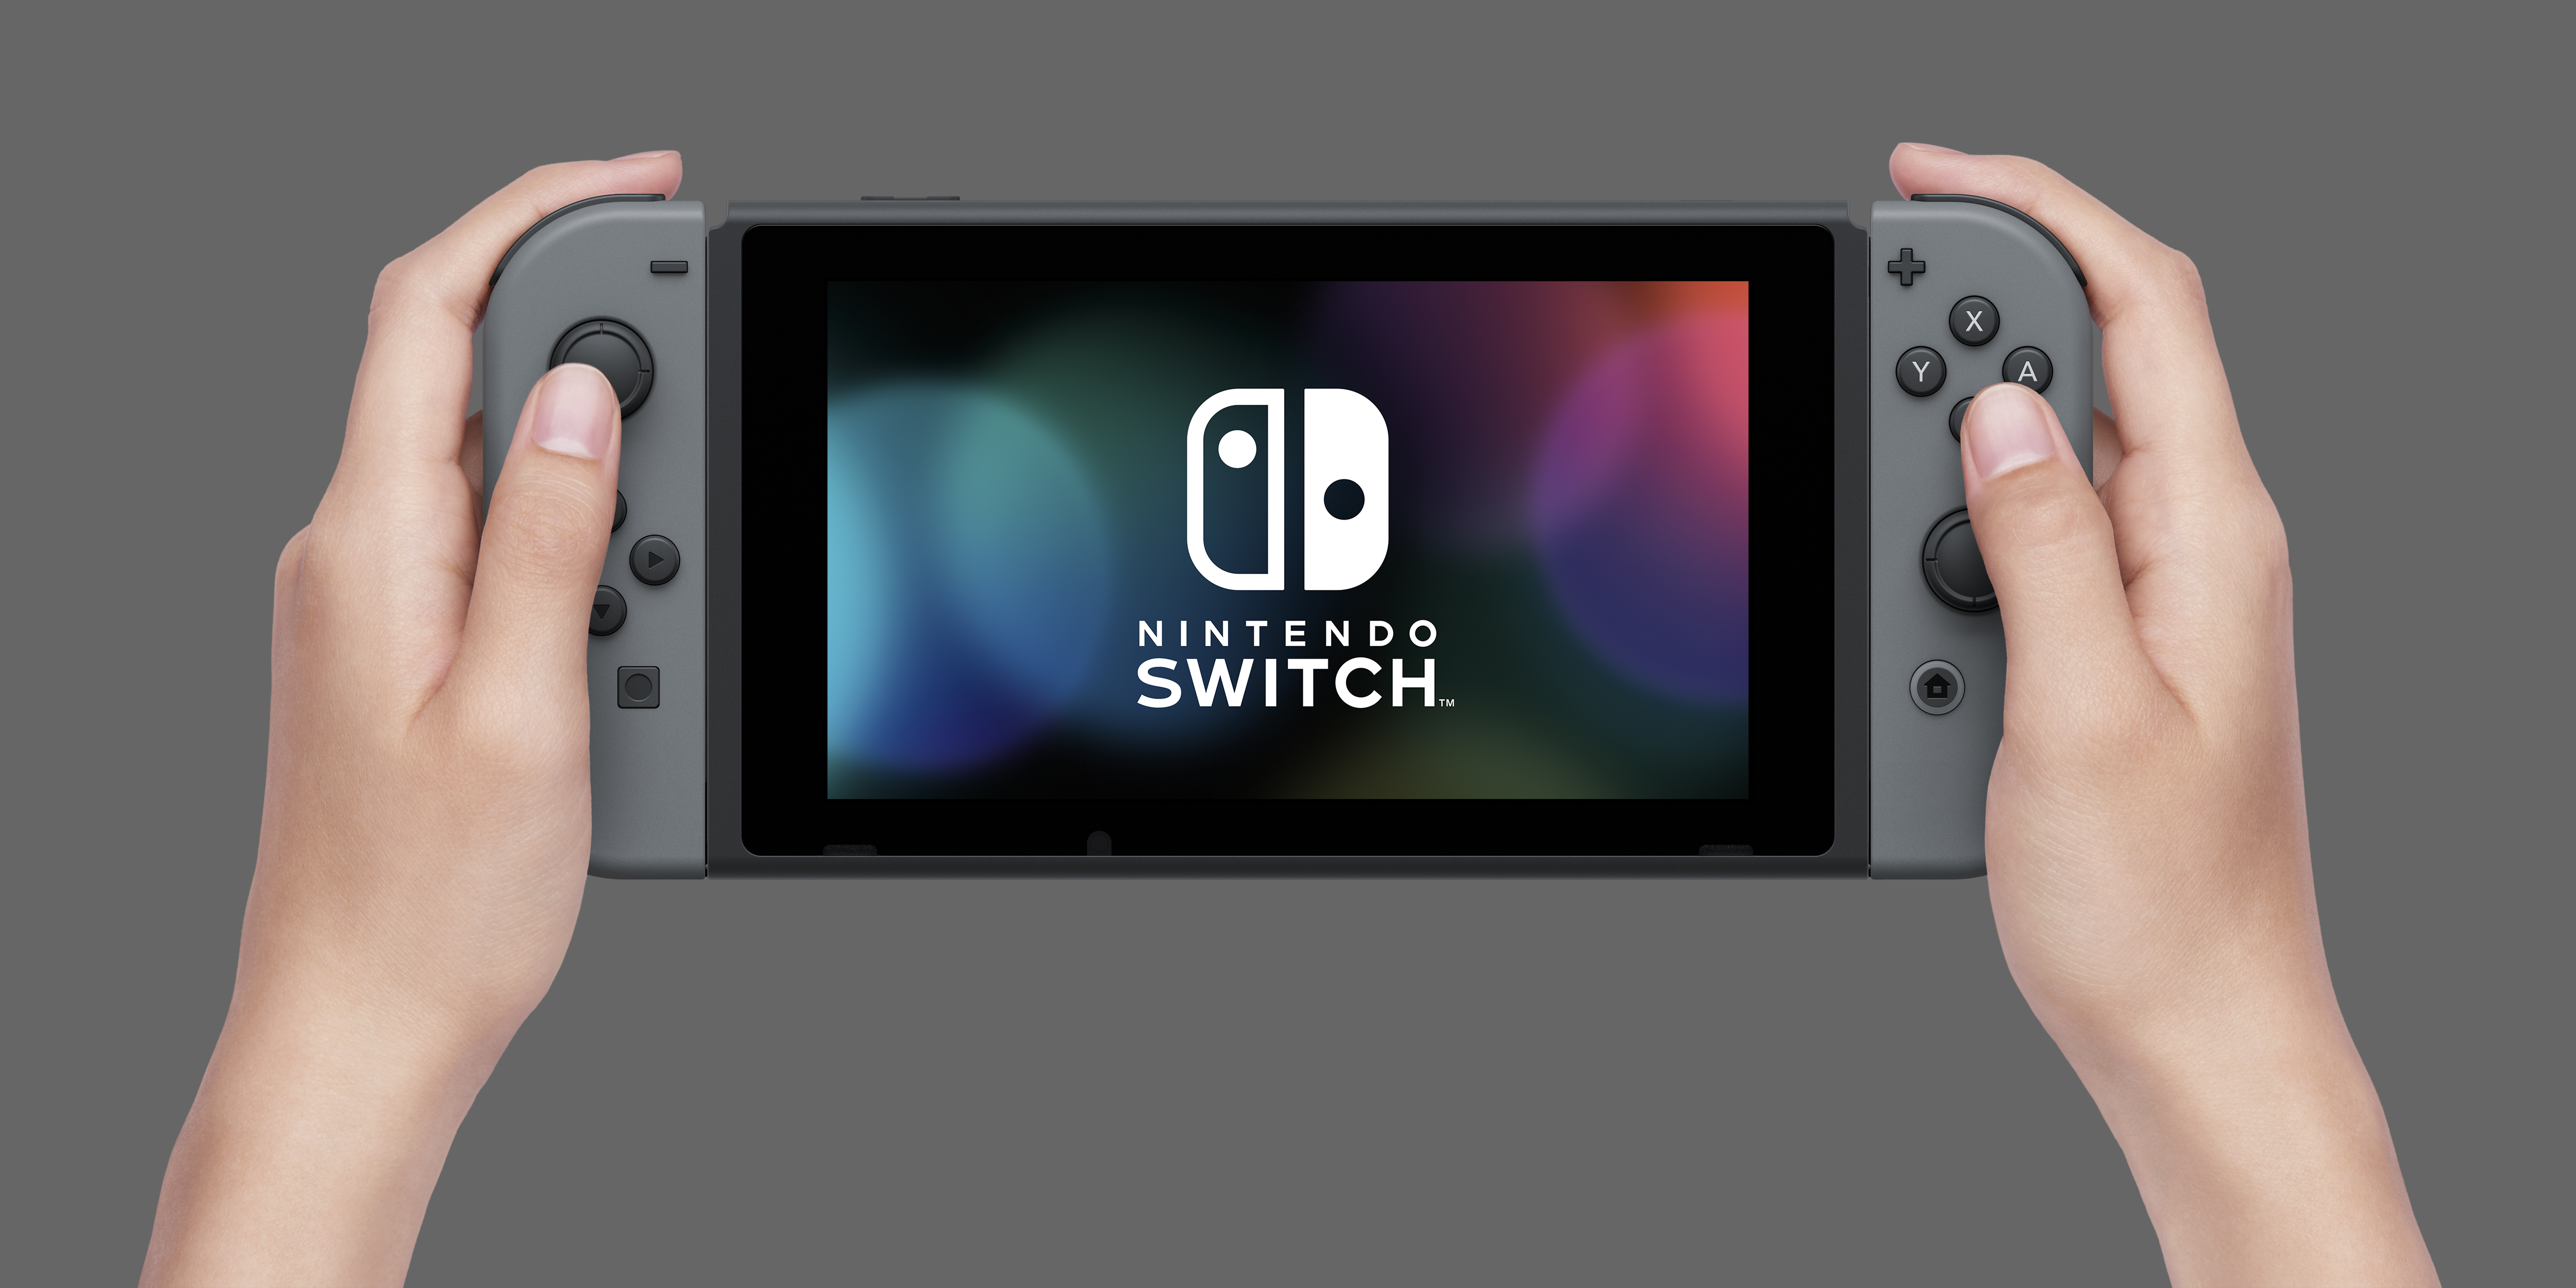 1366x768 Nintendo Switch Console 1366x768 Resolution Hd 4k Wallpapers Images Backgrounds Photos And Pictures